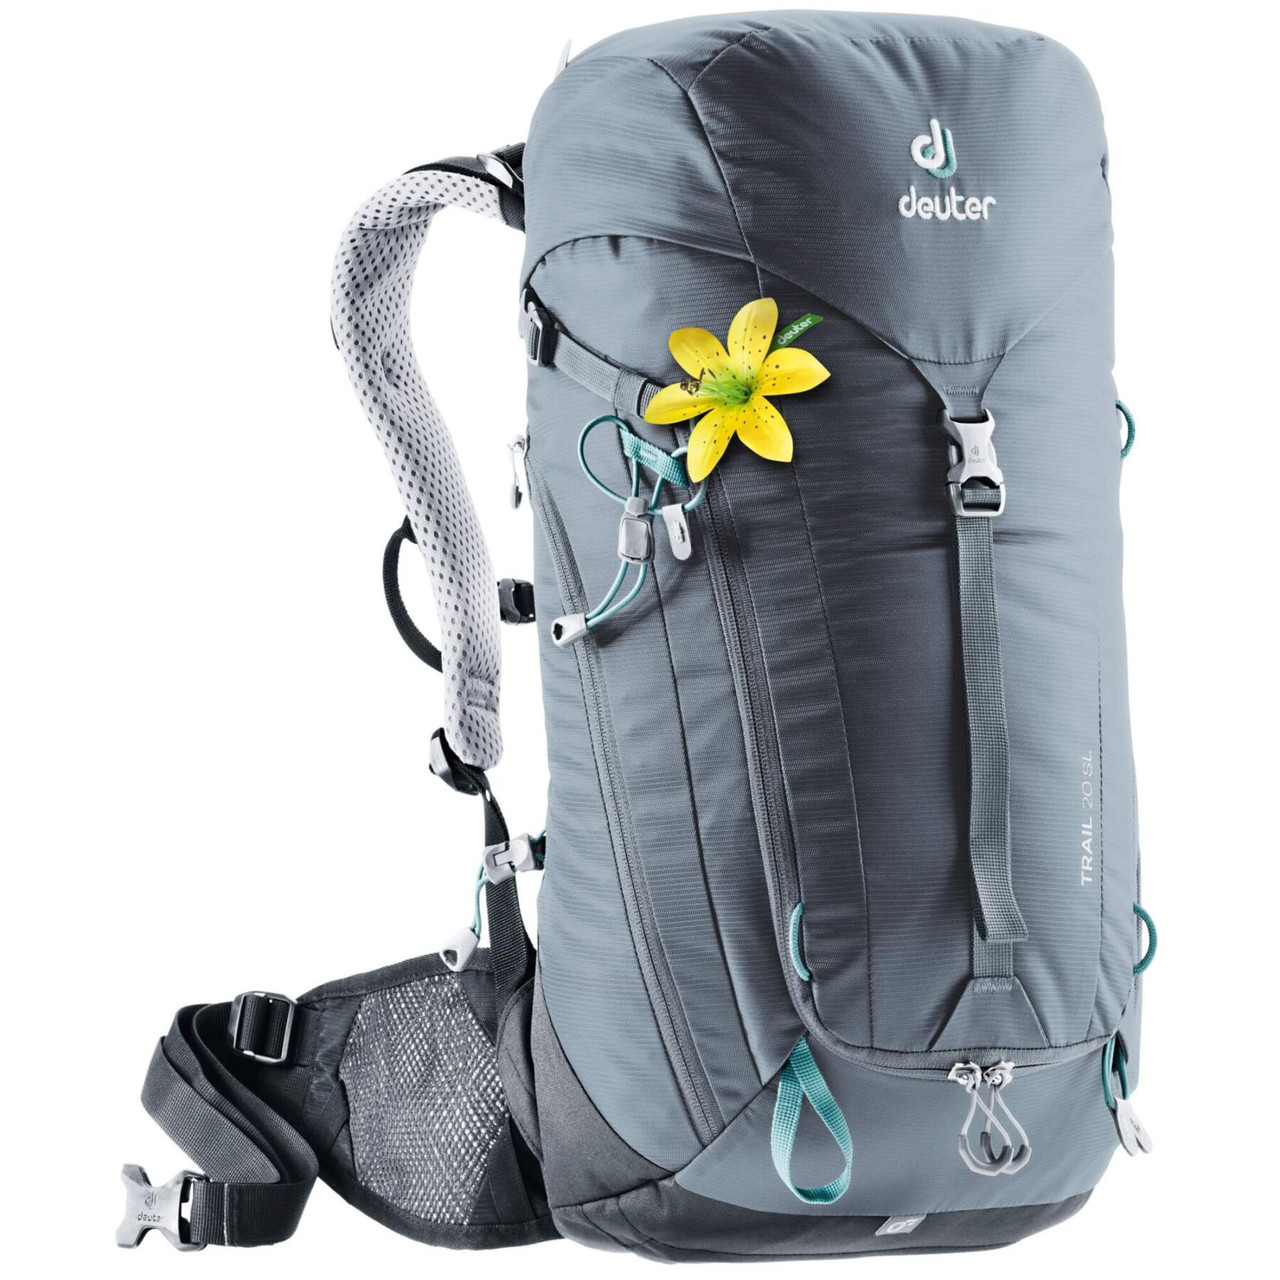 Рюкзак Deuter Trail 20 SL graphite black (3440019 4701)